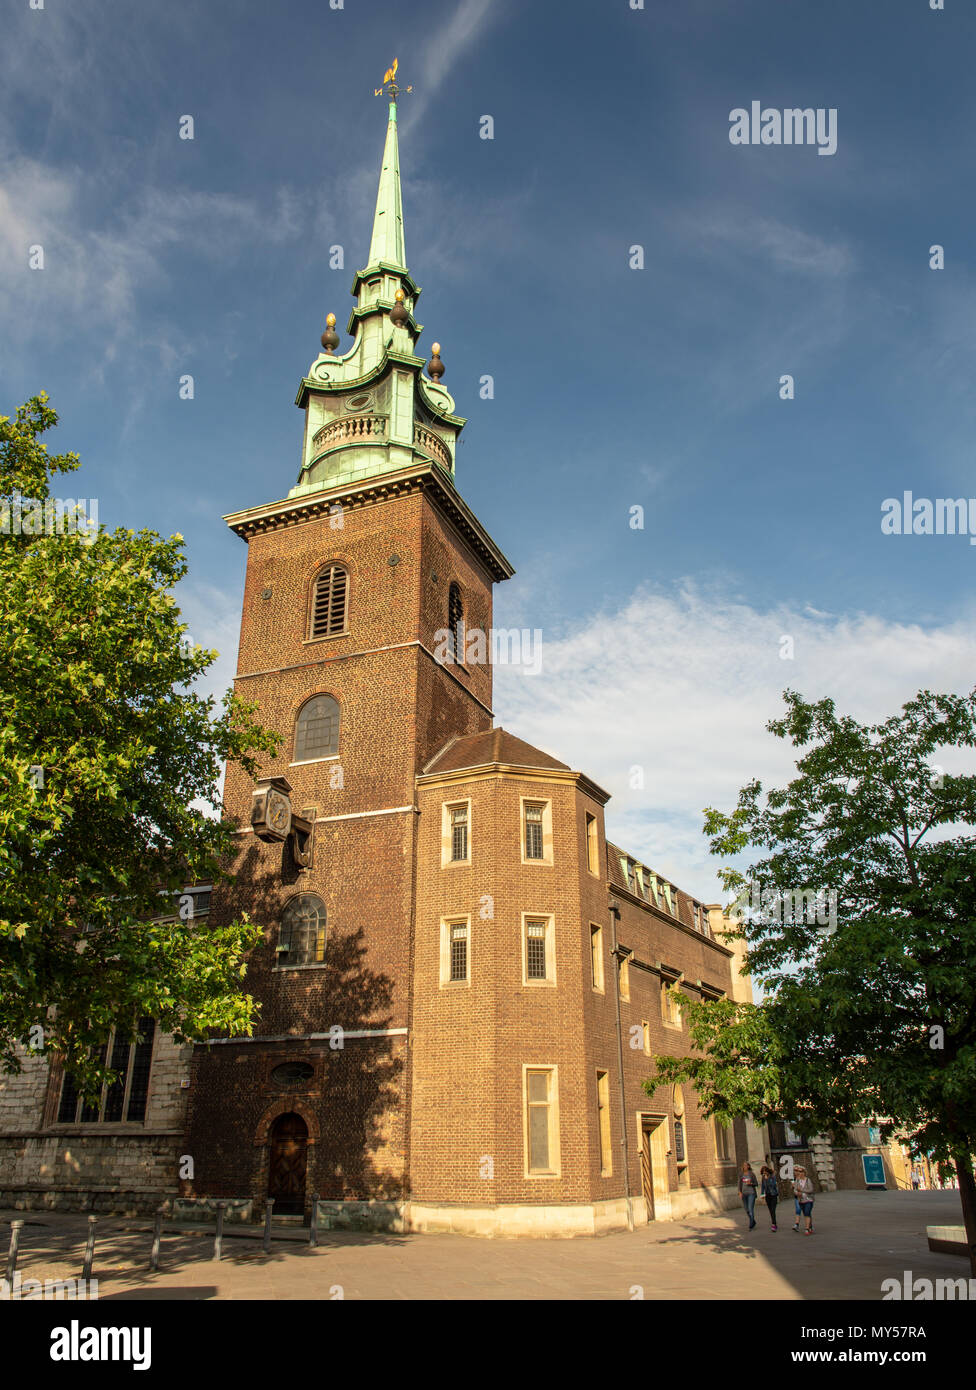 London, England, UK - June 1, 2018: Evening sun lights up the tower and spire of All Hallows by the Tower church in the City of London. - Stock Image